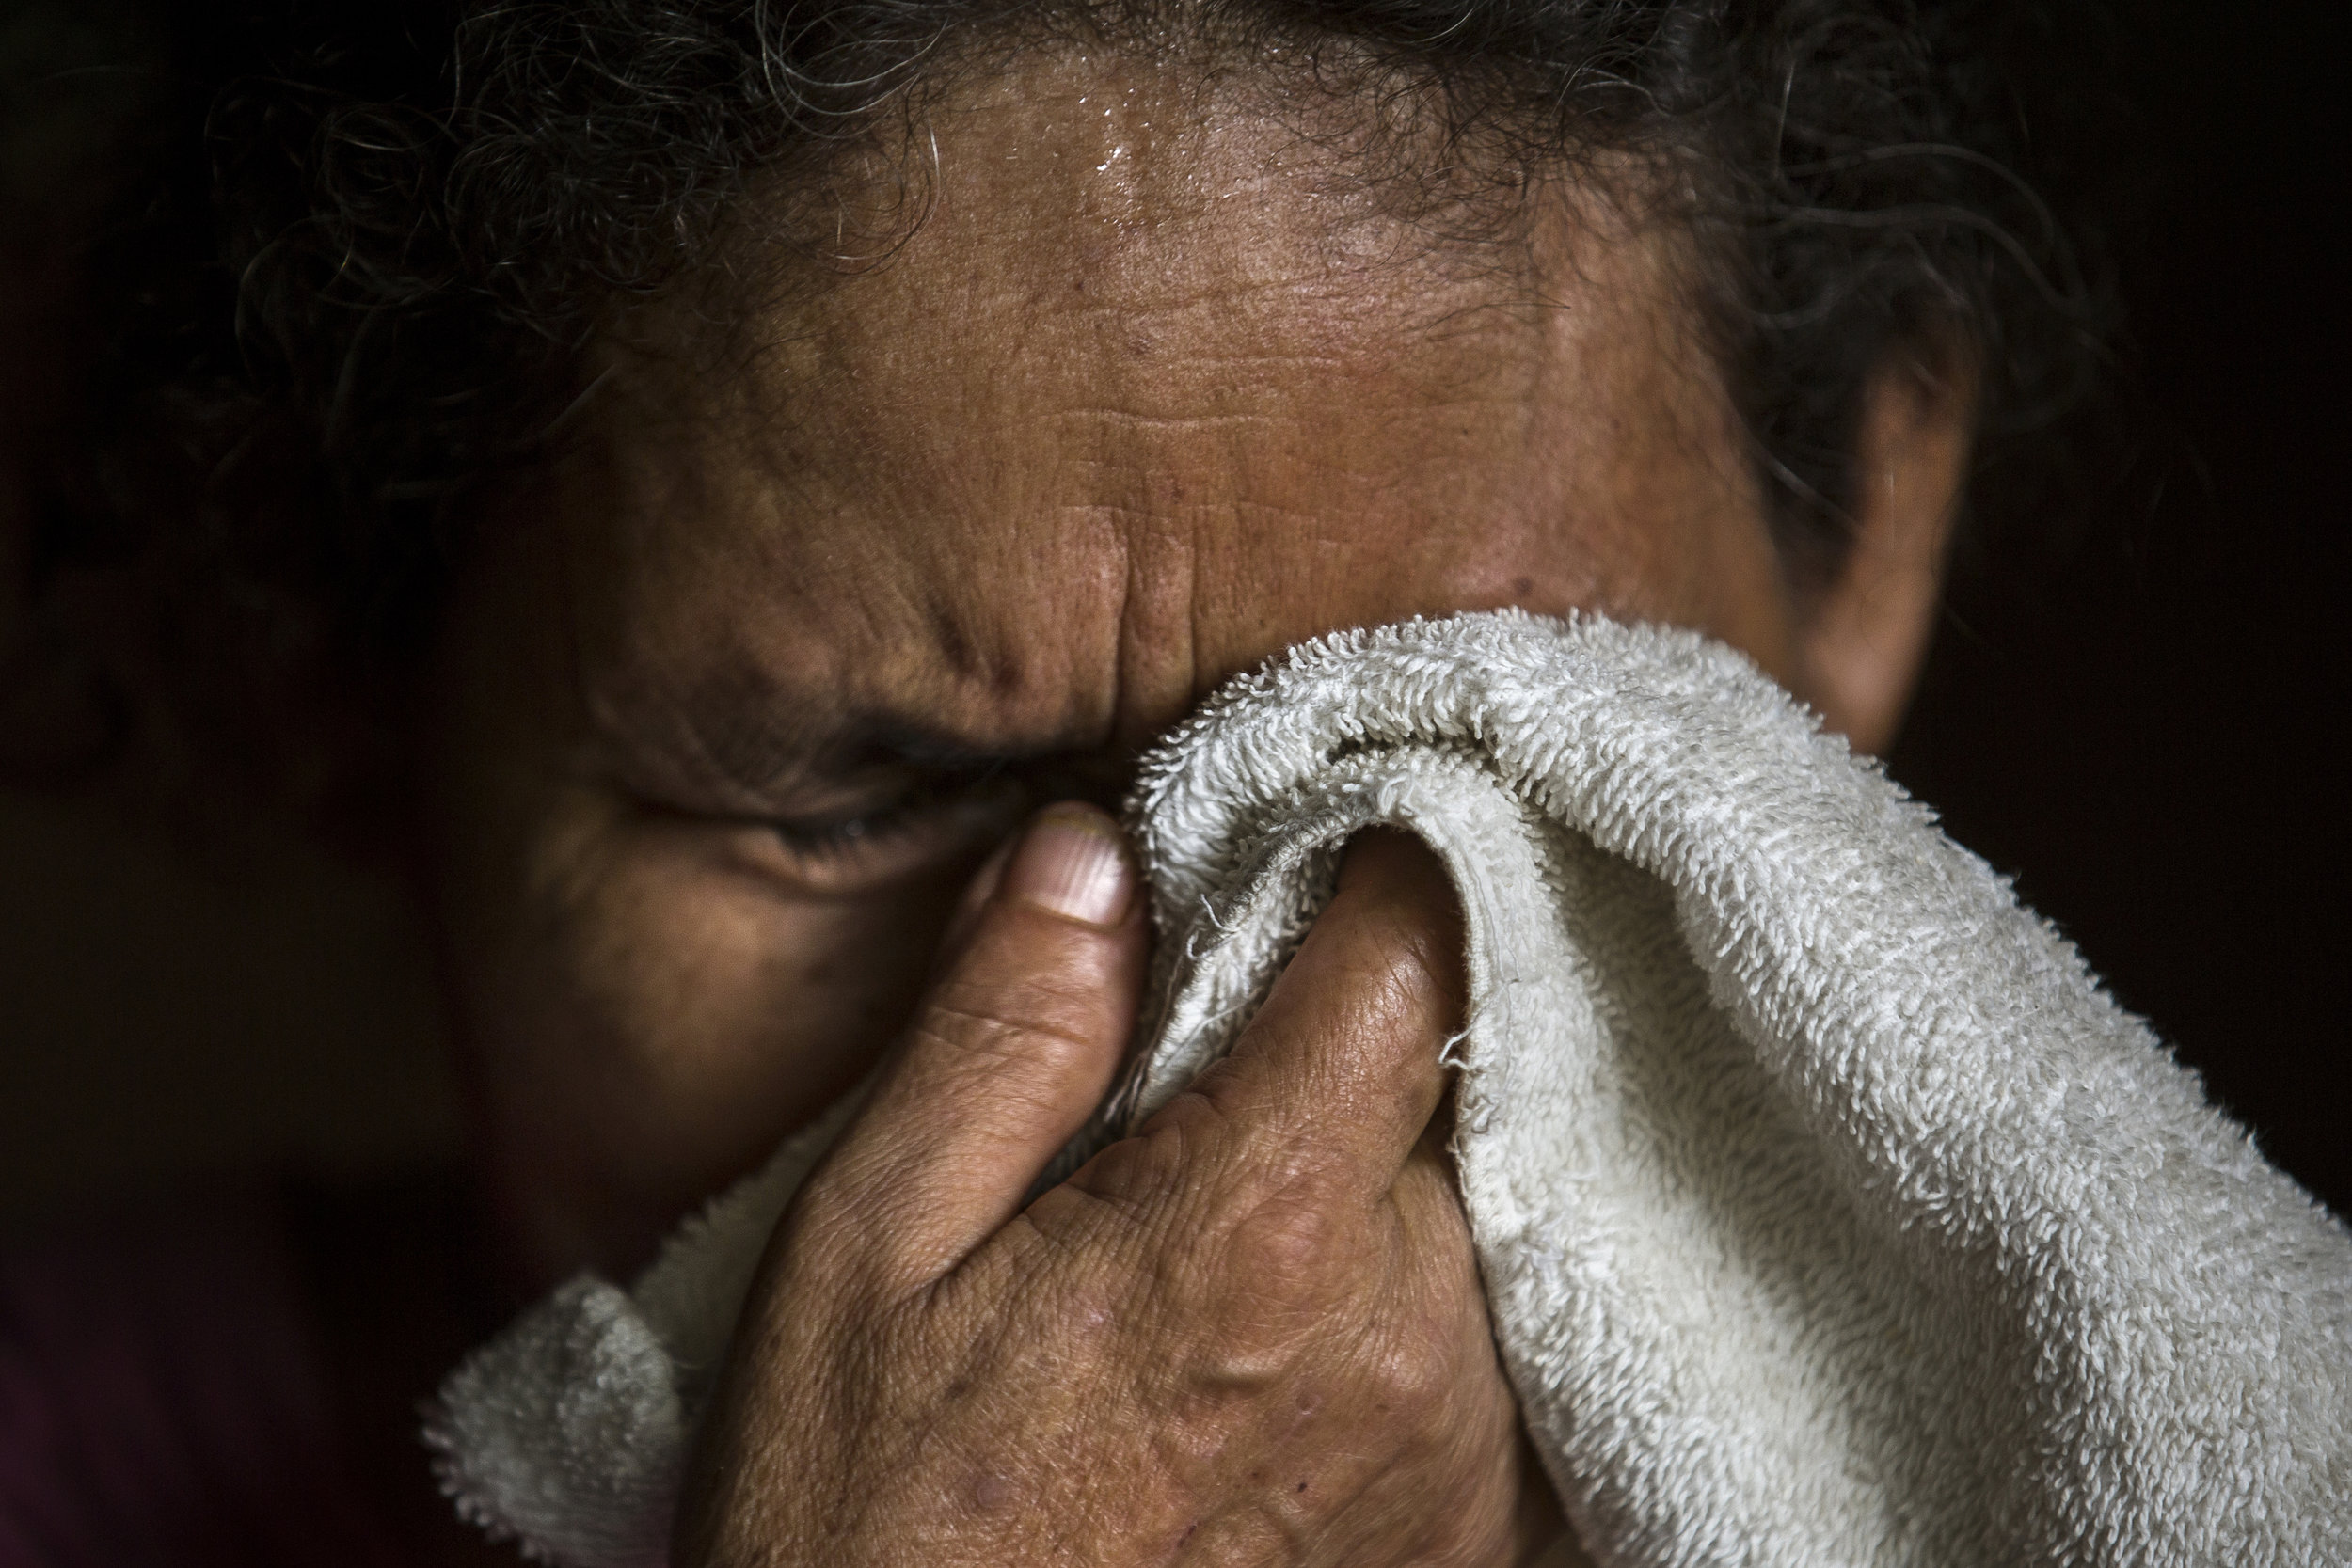 SAN HILARIO, EL SALVADOR. Maria Leoneor Arevalo Romero cries while thinking of her two sons Ernesto de Jesus Arvelao Medina, recently killed by gang members in their hometown of in San Hilario in El Salvador, and Jose Adrian Zamora Arevalo who was detained by immigration officials in the United States for entering the country without the proper documentation.